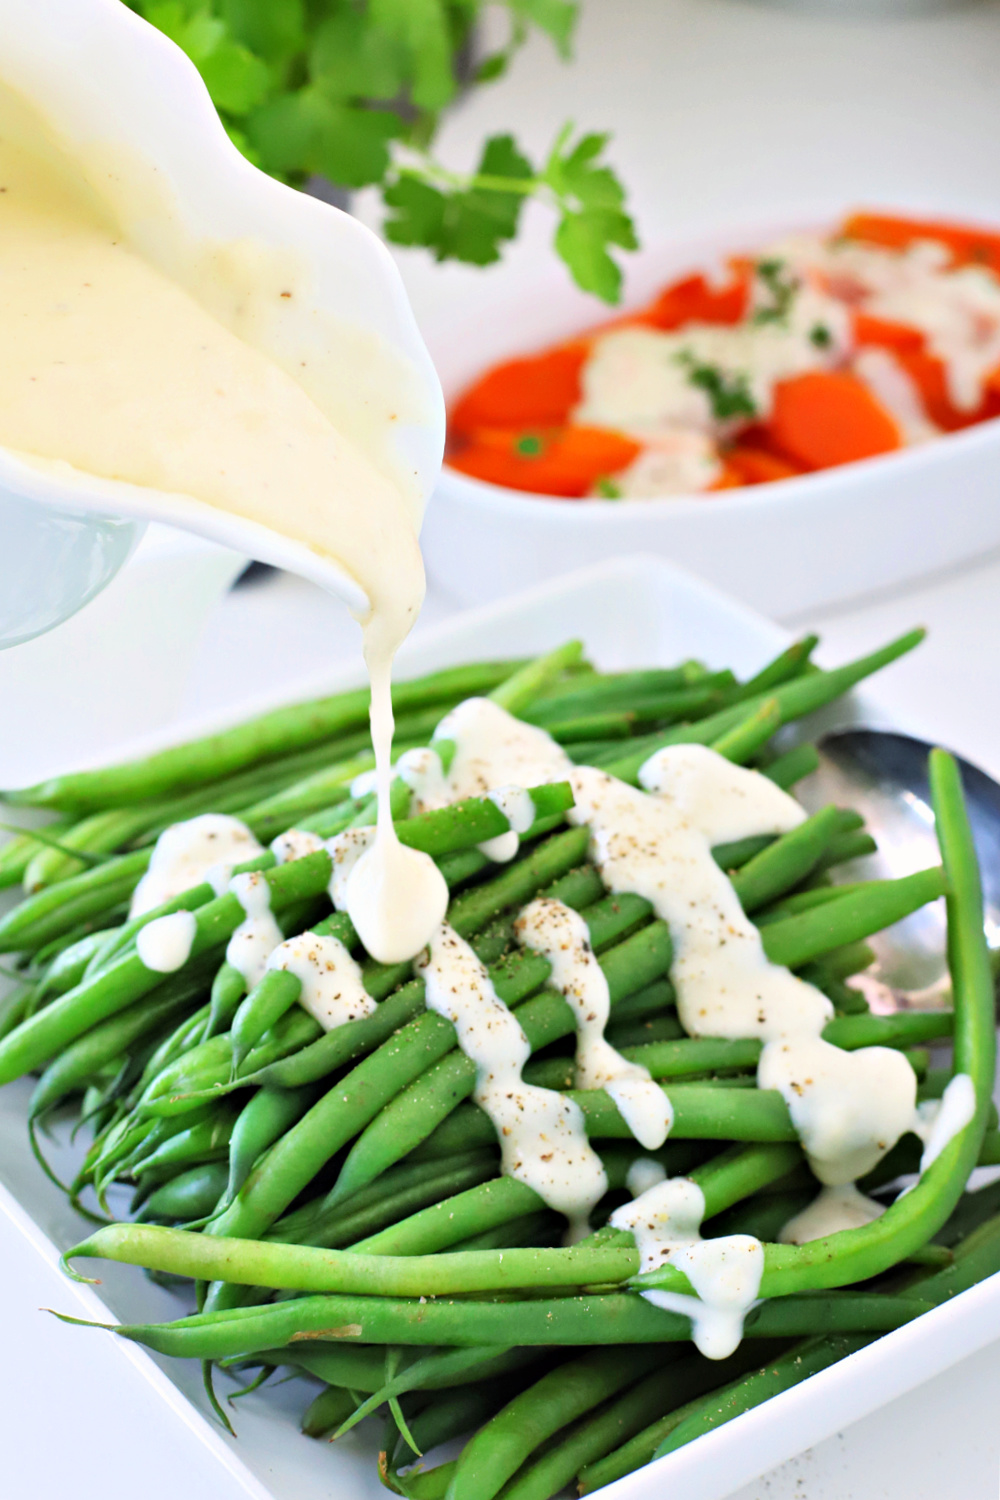 No more boring veggies! Kick up the flavor of your carrots, green beans and broccoli with a quick and easy recipe for creamy cheese sauce. Add to your weeknight or holiday meals like Easter, Thanksgiving and Christmas dinner.